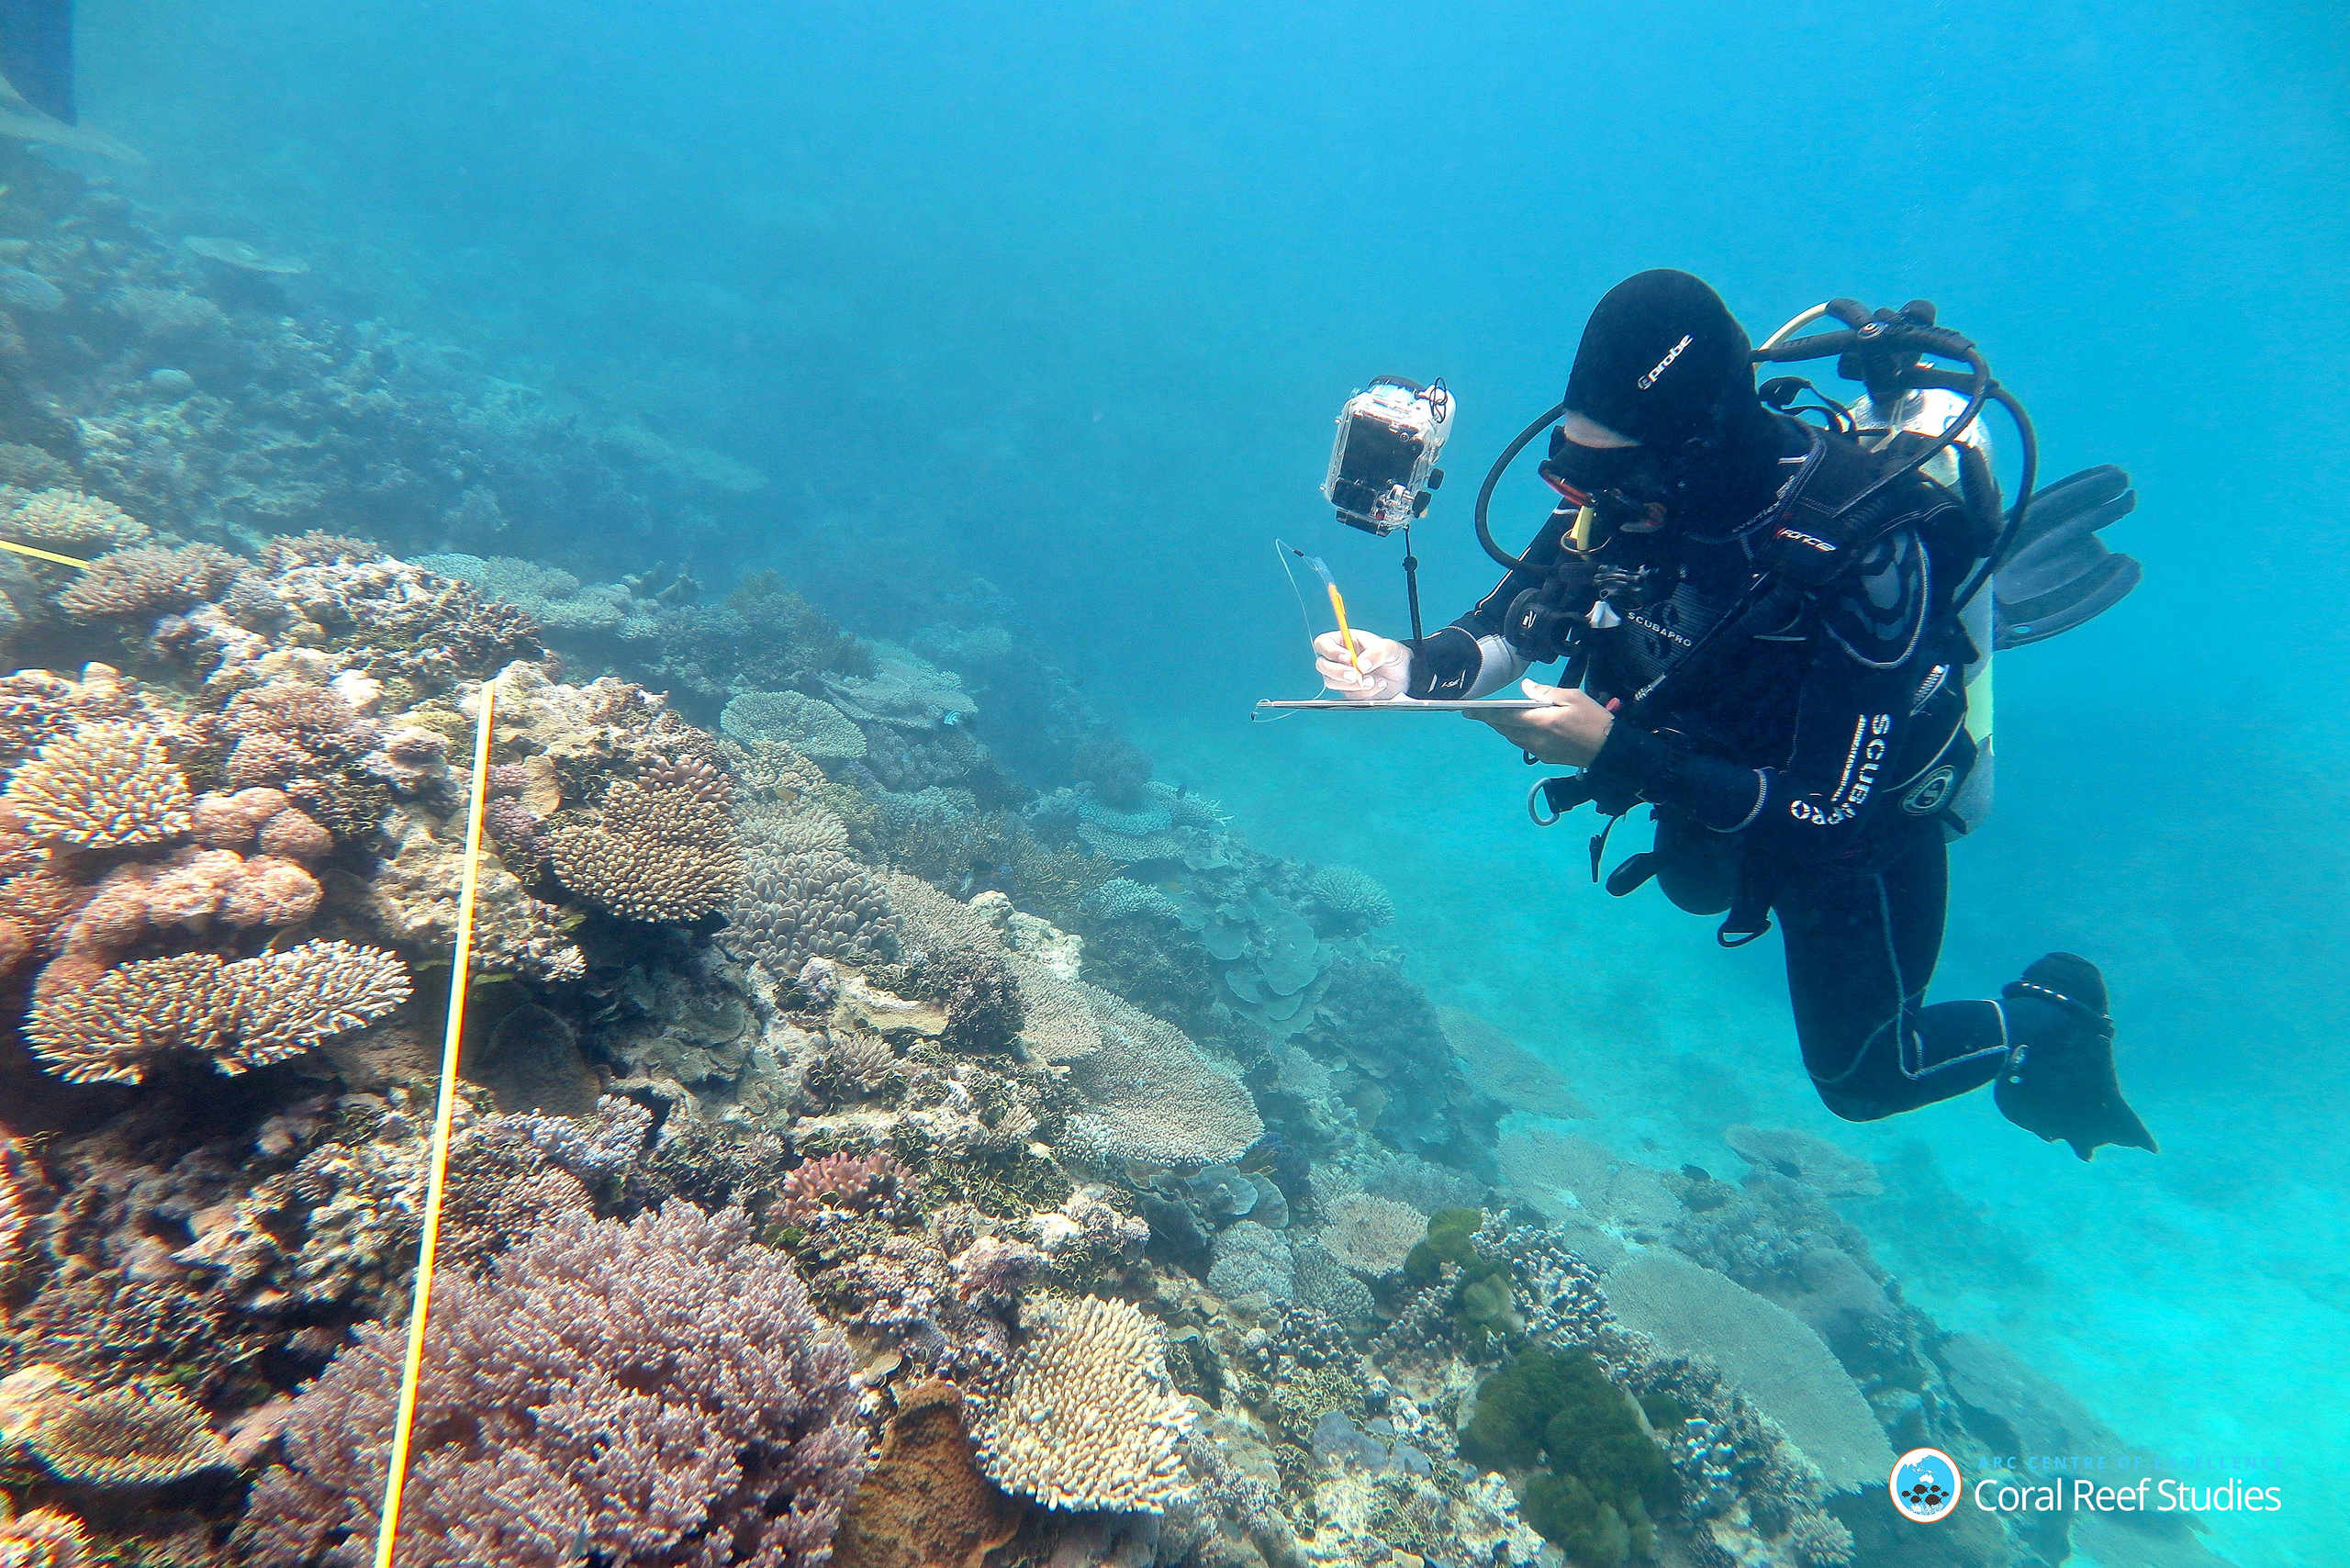 Grace Frank completing bleaching surveys along a transect line on an area known as One Tree Reef, in the Capricorn Group of Islands, on the Great Barrier Reef in Australia.